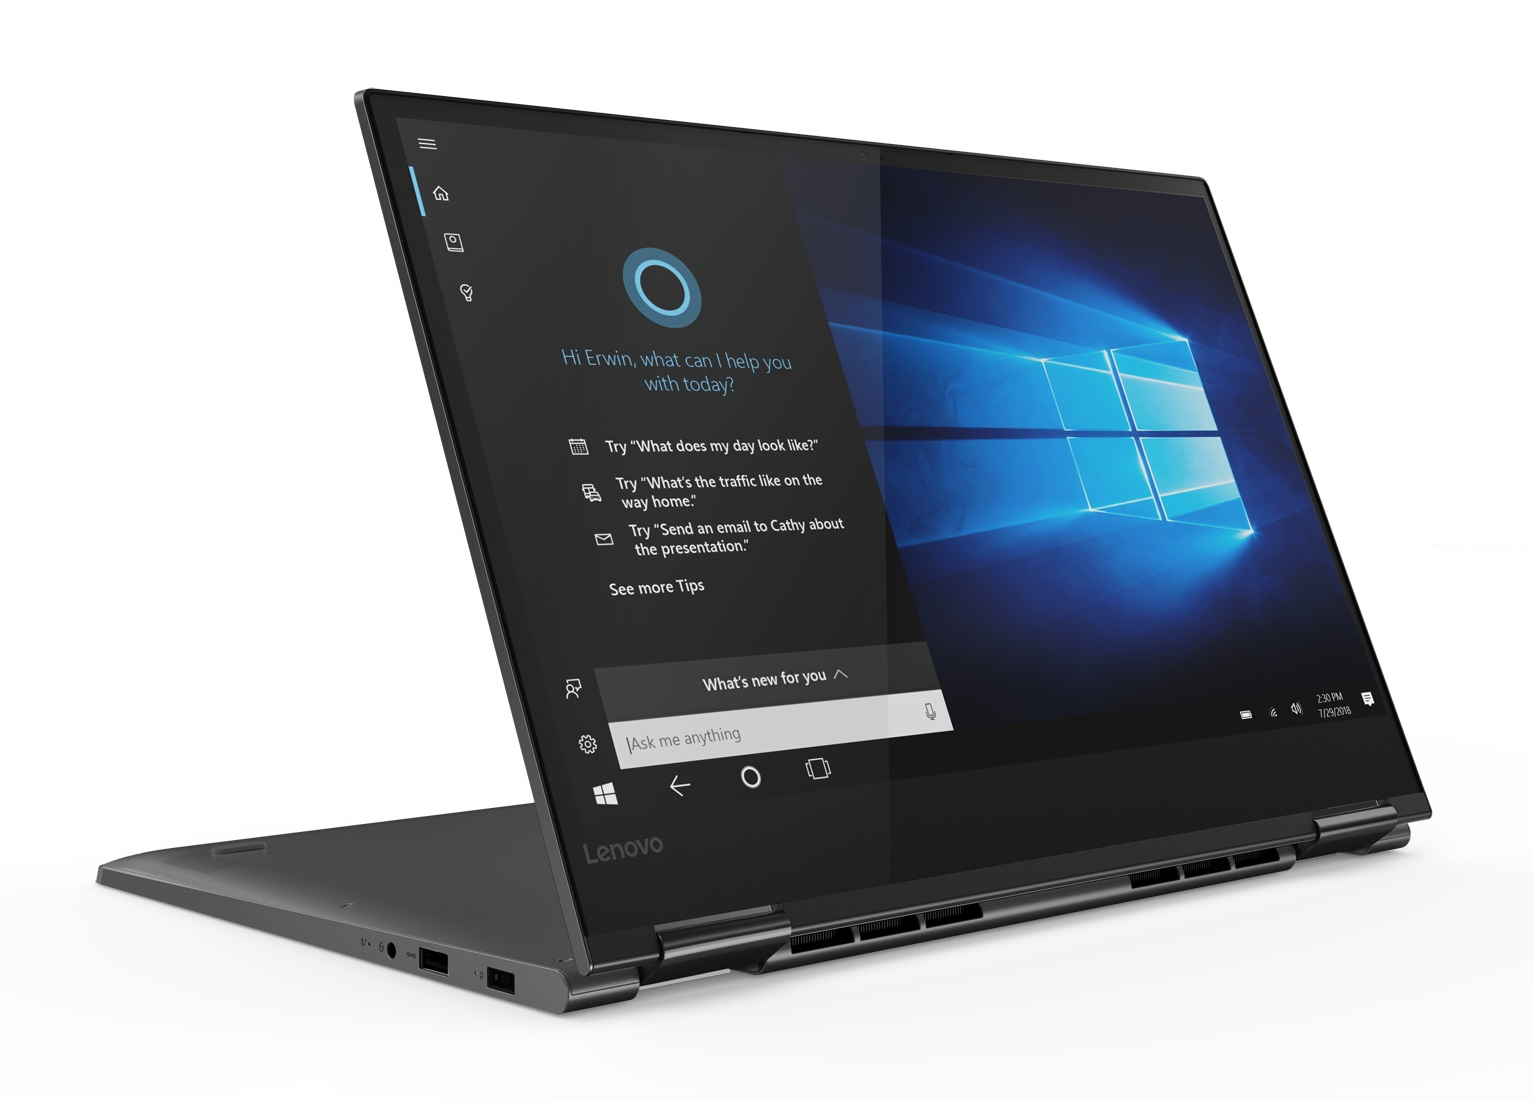 Фото  Ультрабук Lenovo Yoga 730-15IKB Iron Grey (81CU0018RU)